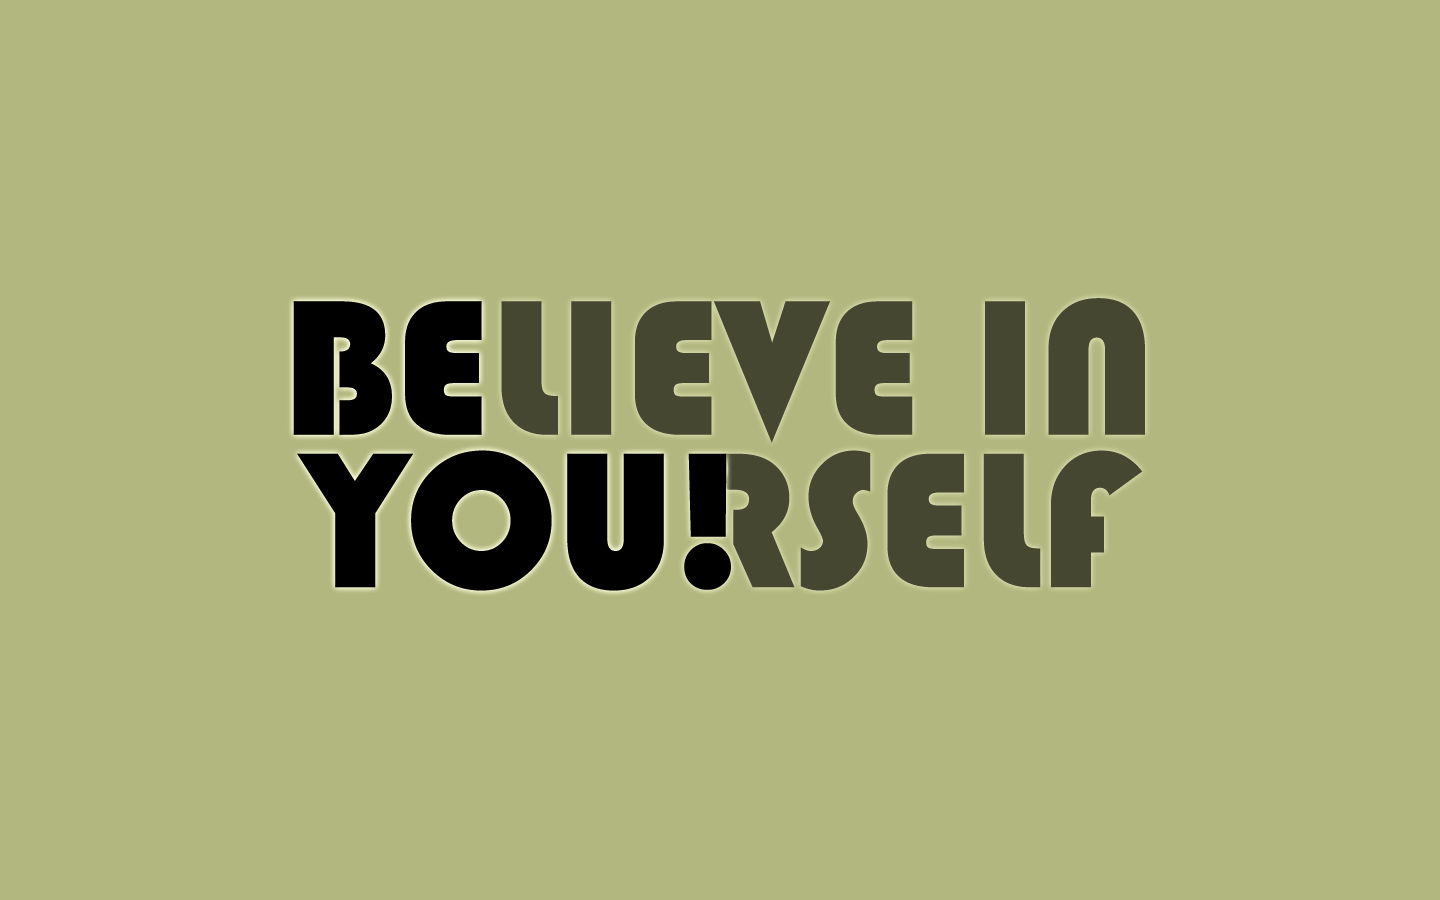 believe in yourself Browse our collection of inspirational, wise, and humorous believing in yourself  quotes and believing in yourself sayings.